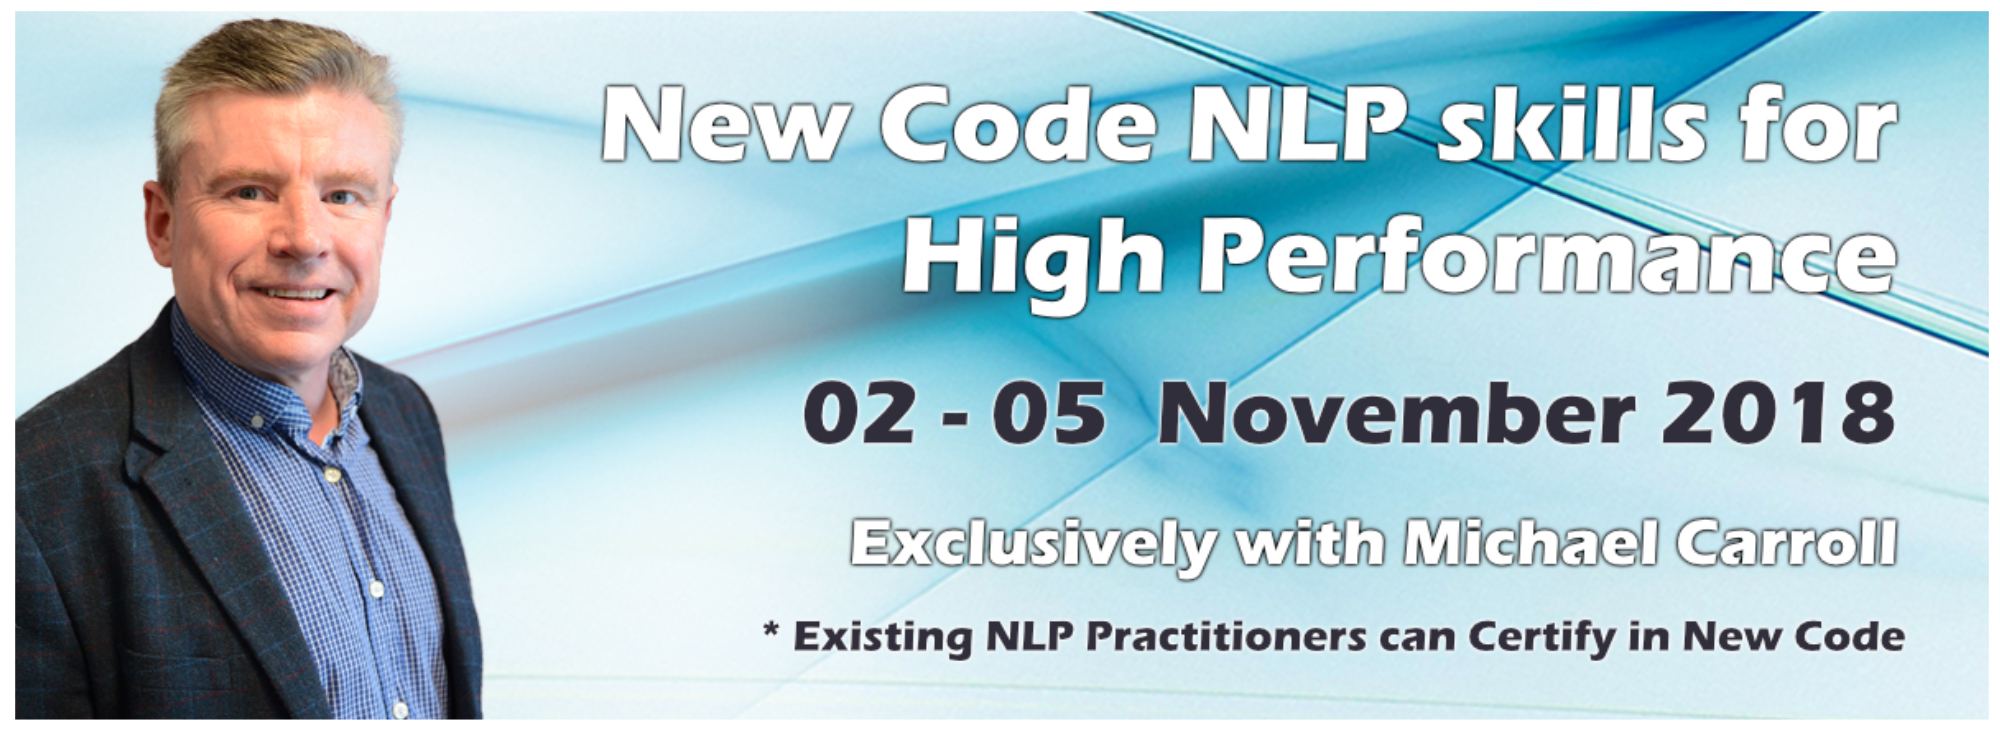 New Code NLP skills for High Performance